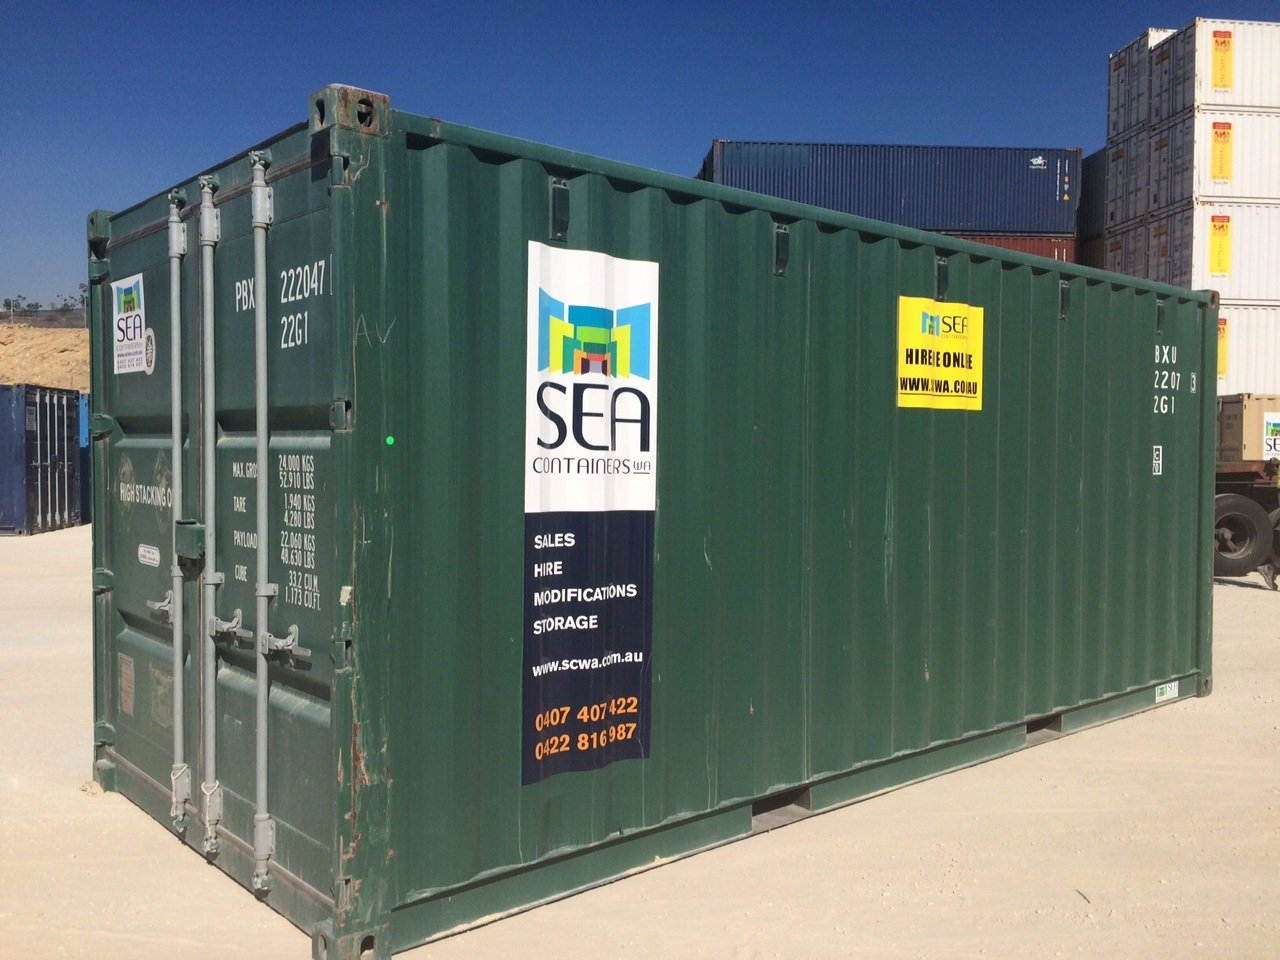 Sea Containers - Shipping Container Sales Perth, SEA